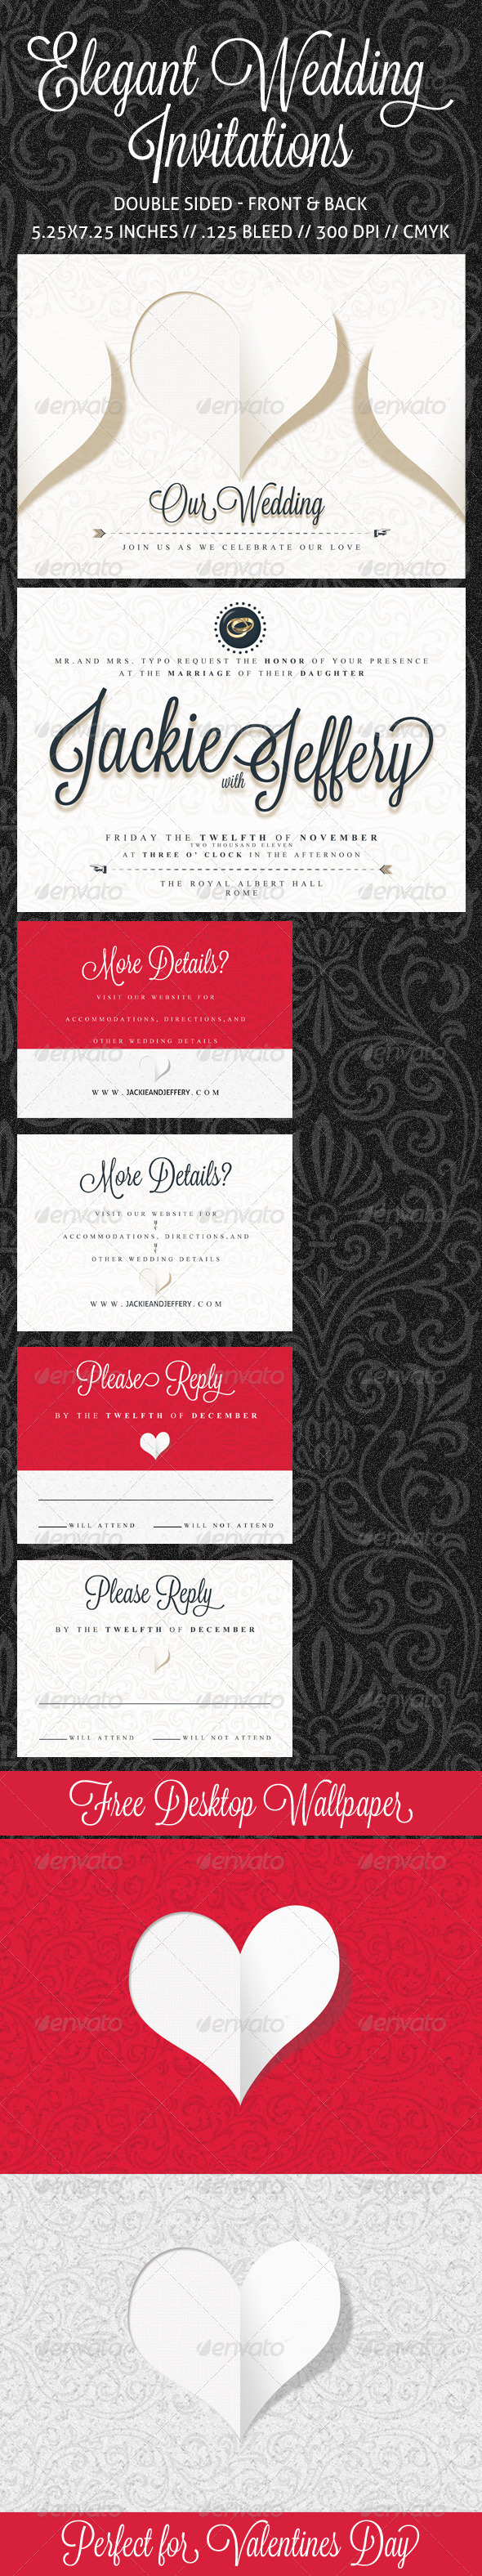 Wedding Invitation Templates from GraphicRiver (Page 52)